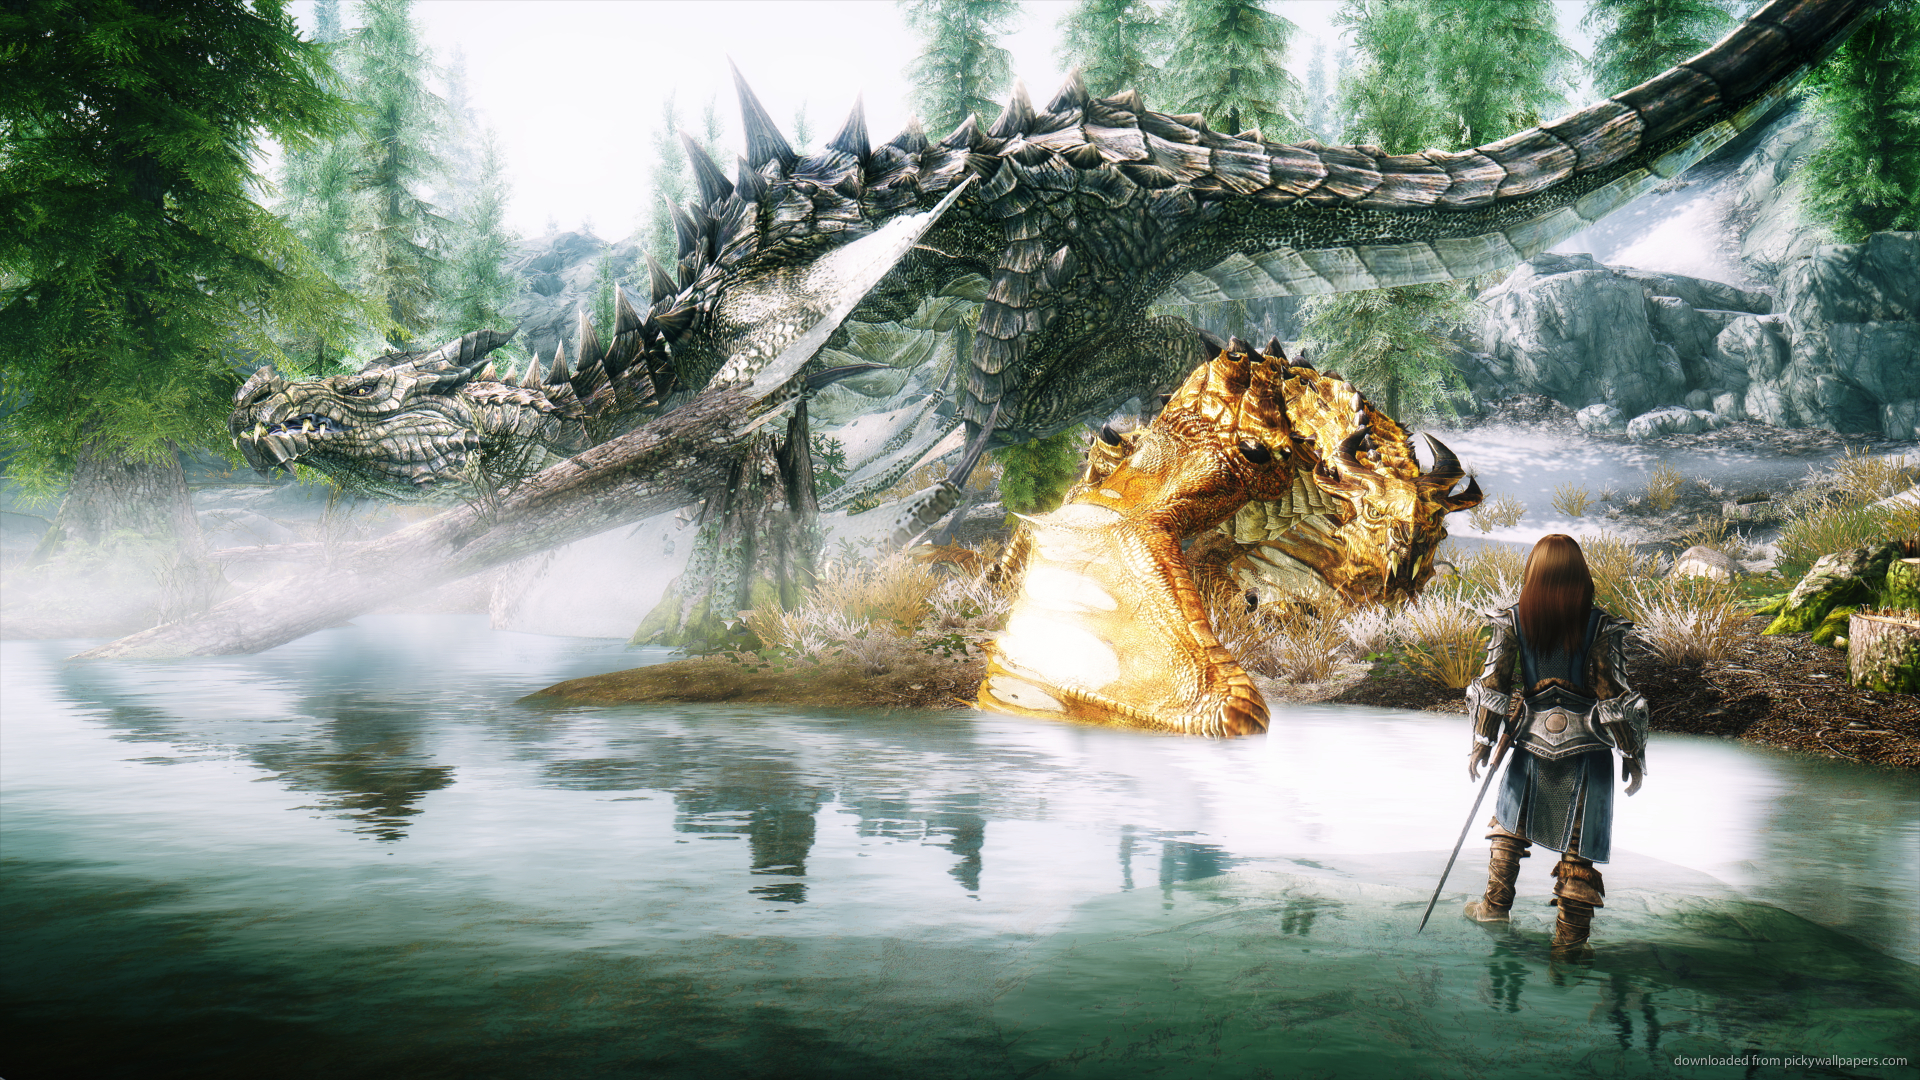 1920x1080 Wallpaper: Skyrim Wallpaper 1920x1080